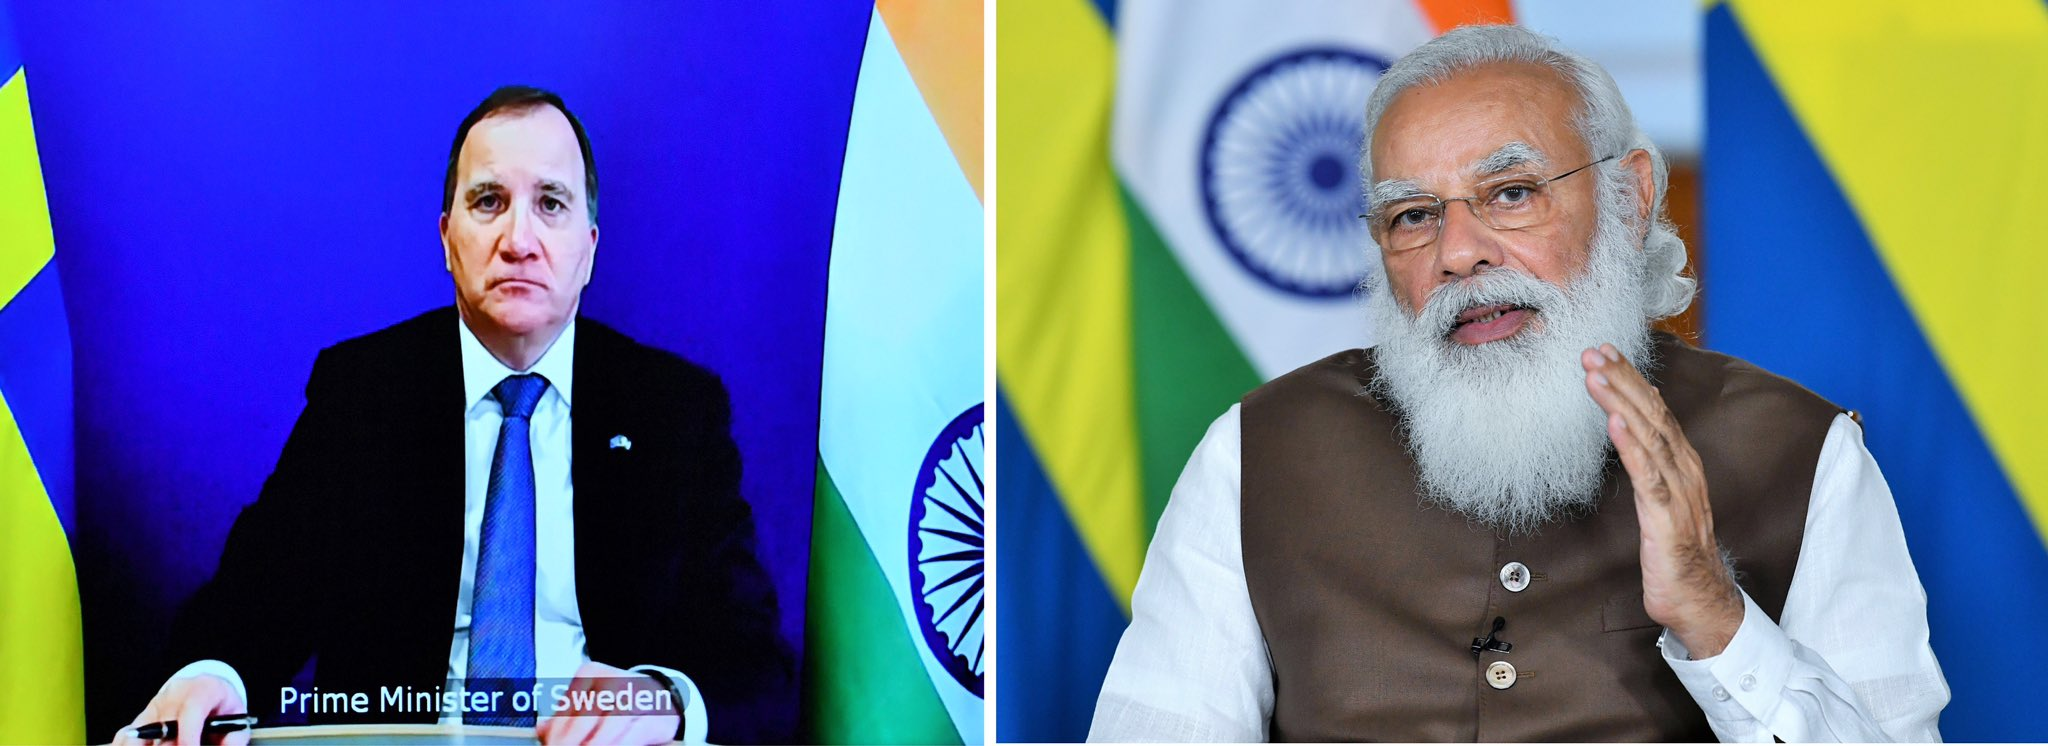 India and Sweden can further enhance ties in different fields, PM Modi tells his Swedish counterpart Stefan Löfven